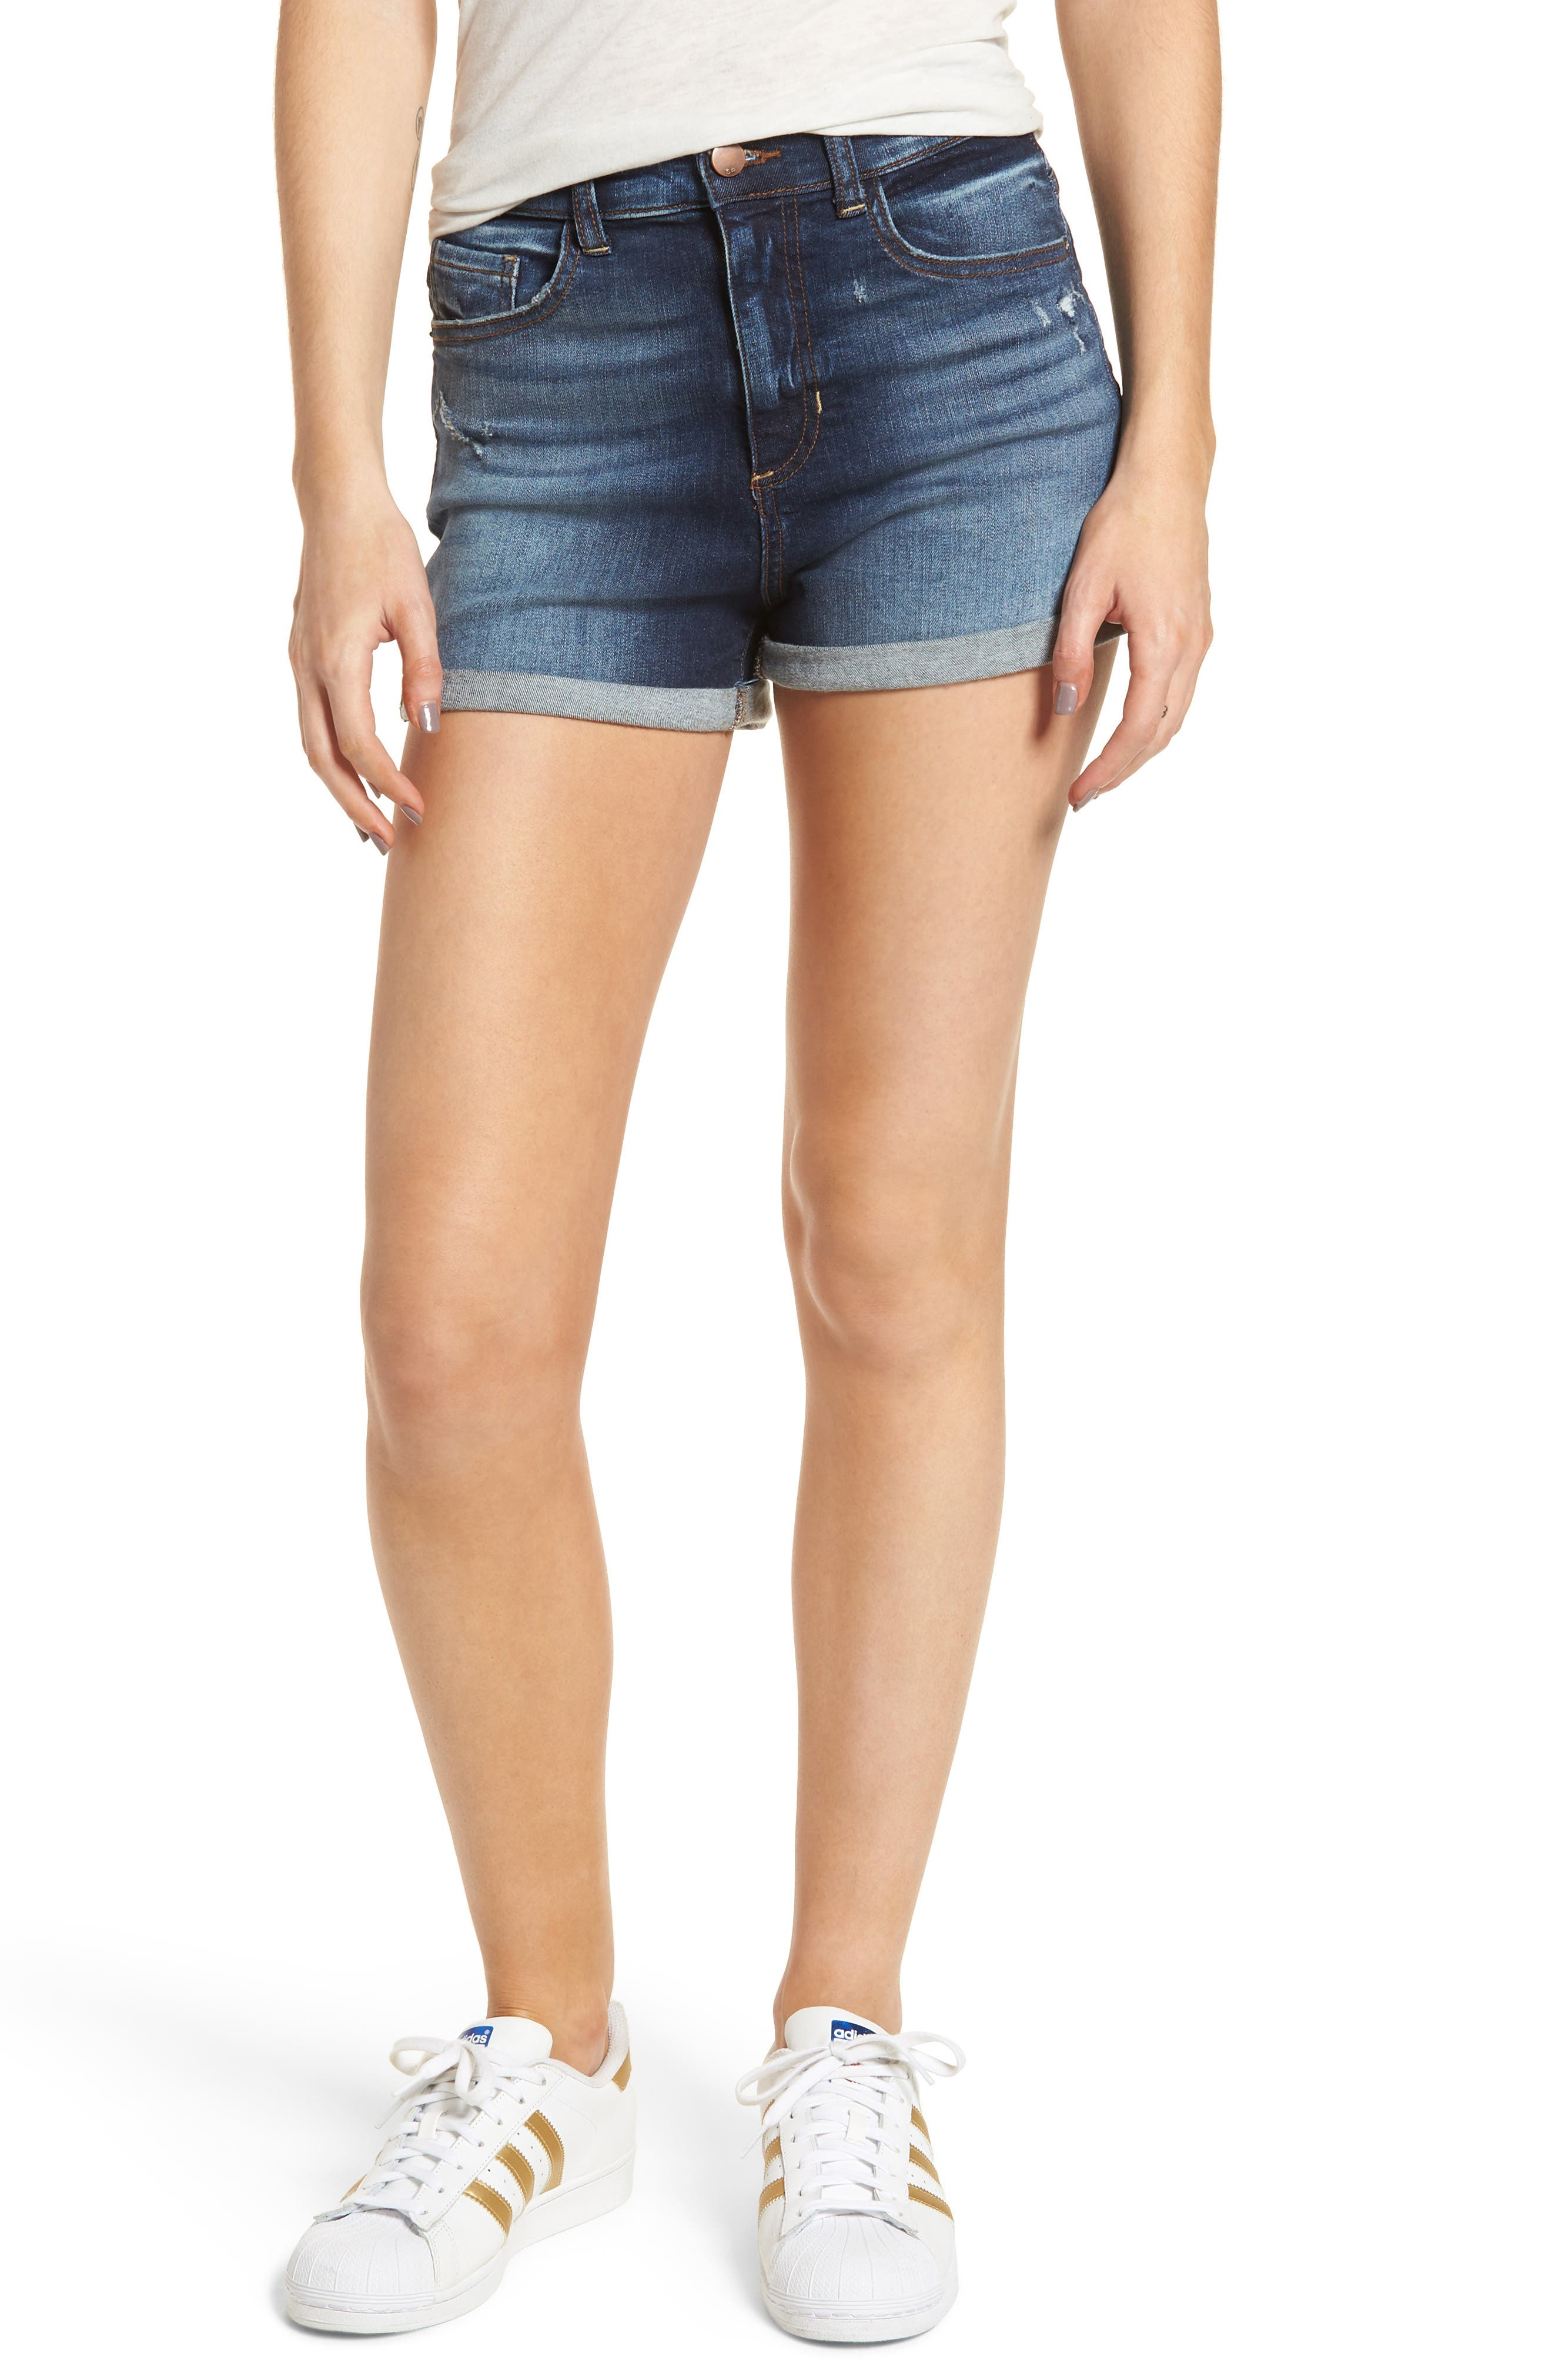 Alternate Image 1 Selected - SP Black Cuffed High Waist Denim Shorts